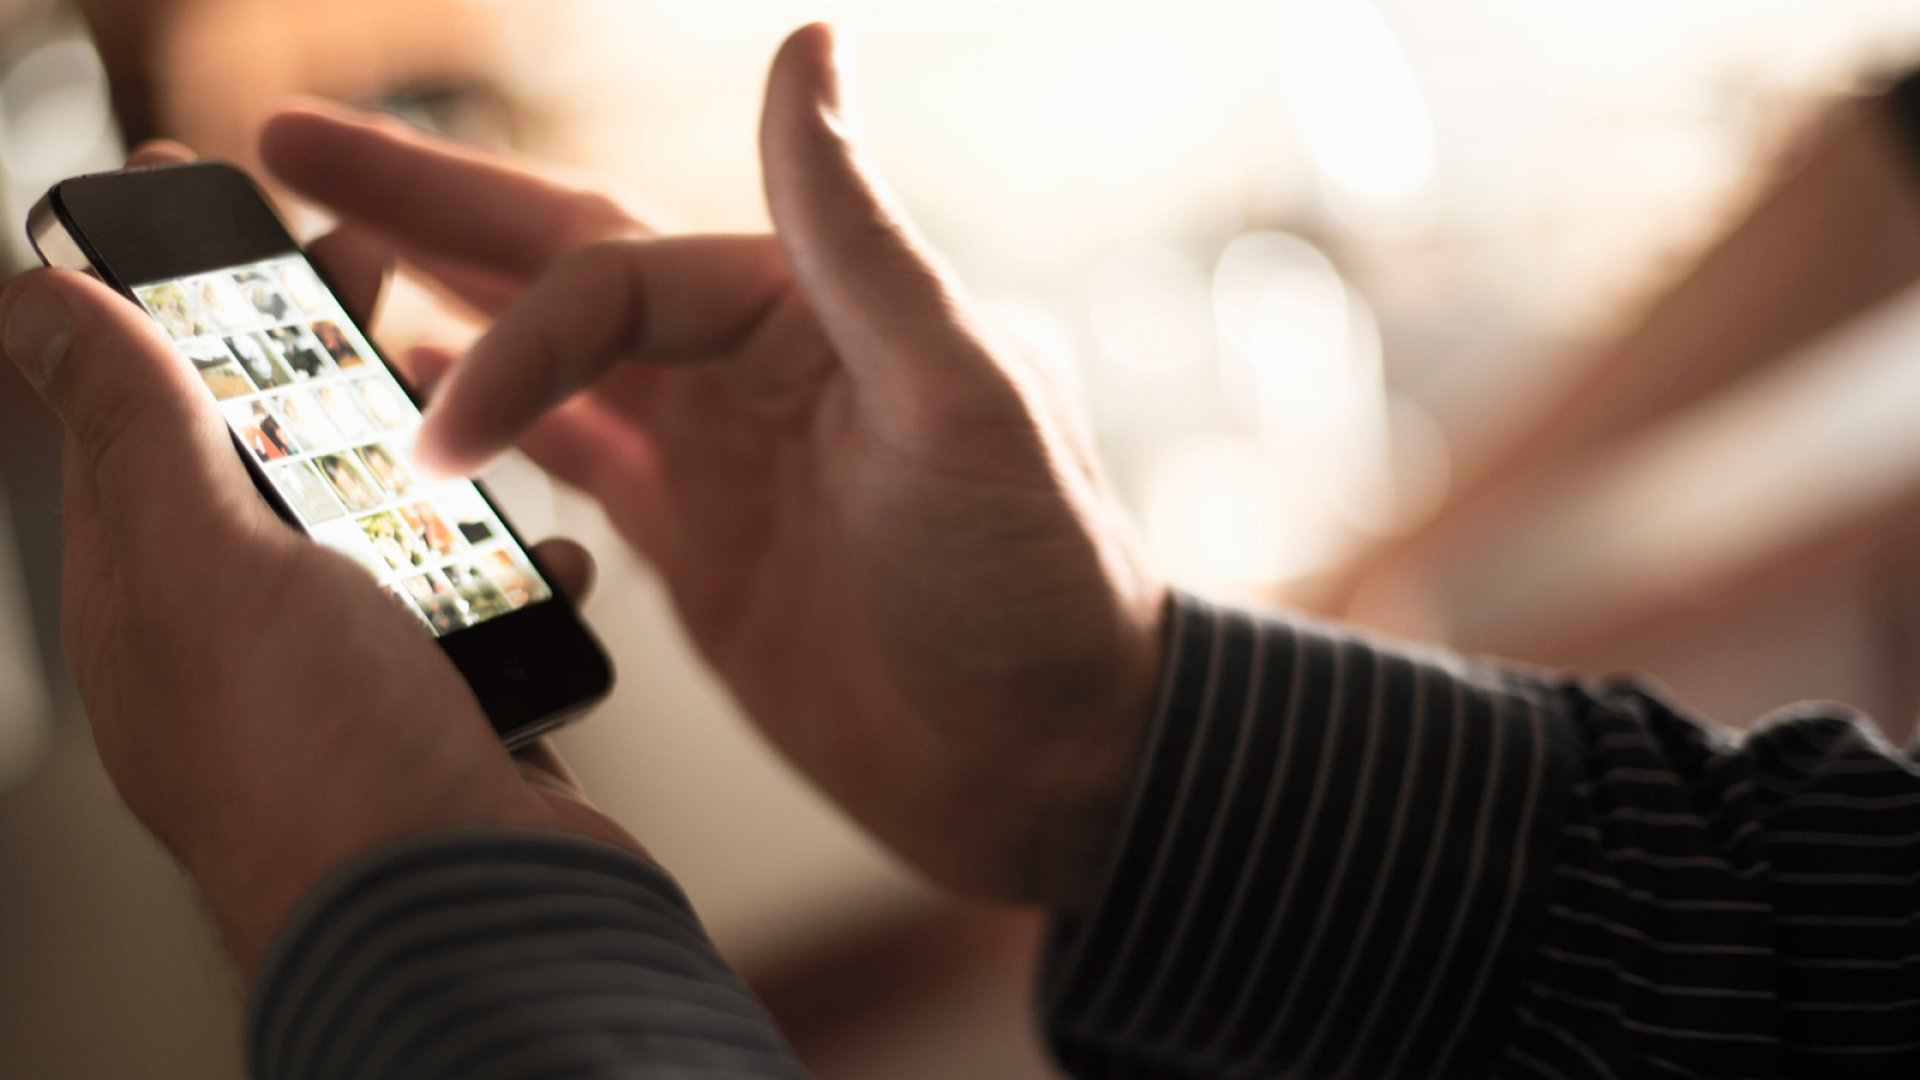 9 Surprisingly Good Reasons to Turn Off Your Smartphone